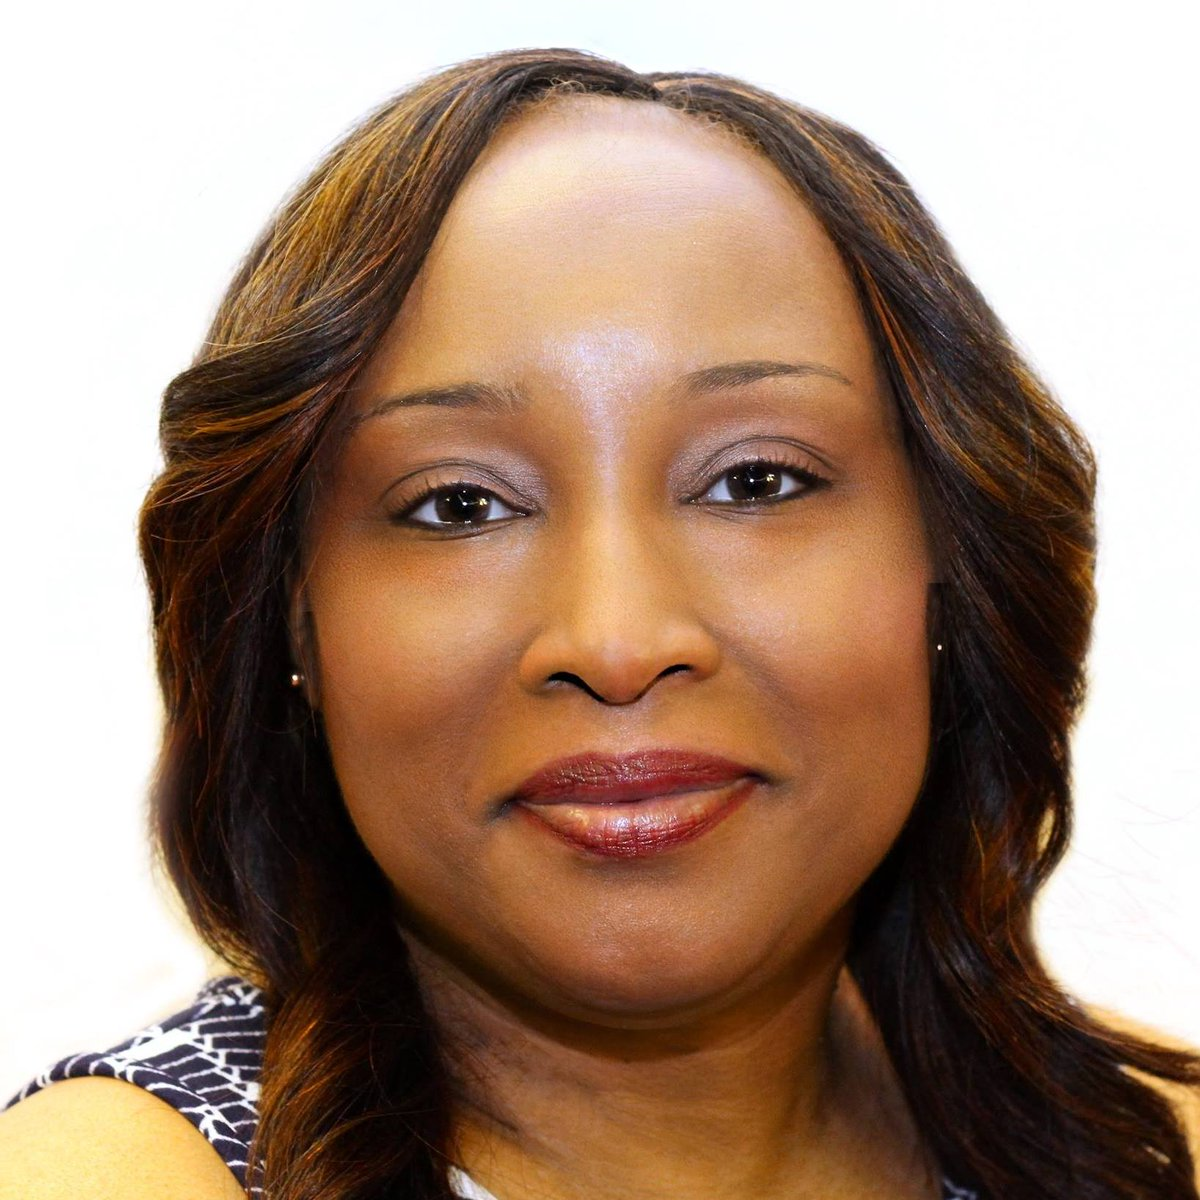 test Twitter Media - In honor of National Volunteer Week we celebrate Dr. Rochelle Webb. Rochelle is a certified trainer, executive coach, educational consultant & active volunteer at WiNGS. She is an entrepreneur, member of the @WBCSouthwest & is committed to helping women achieve business ownership https://t.co/c081Lj560B